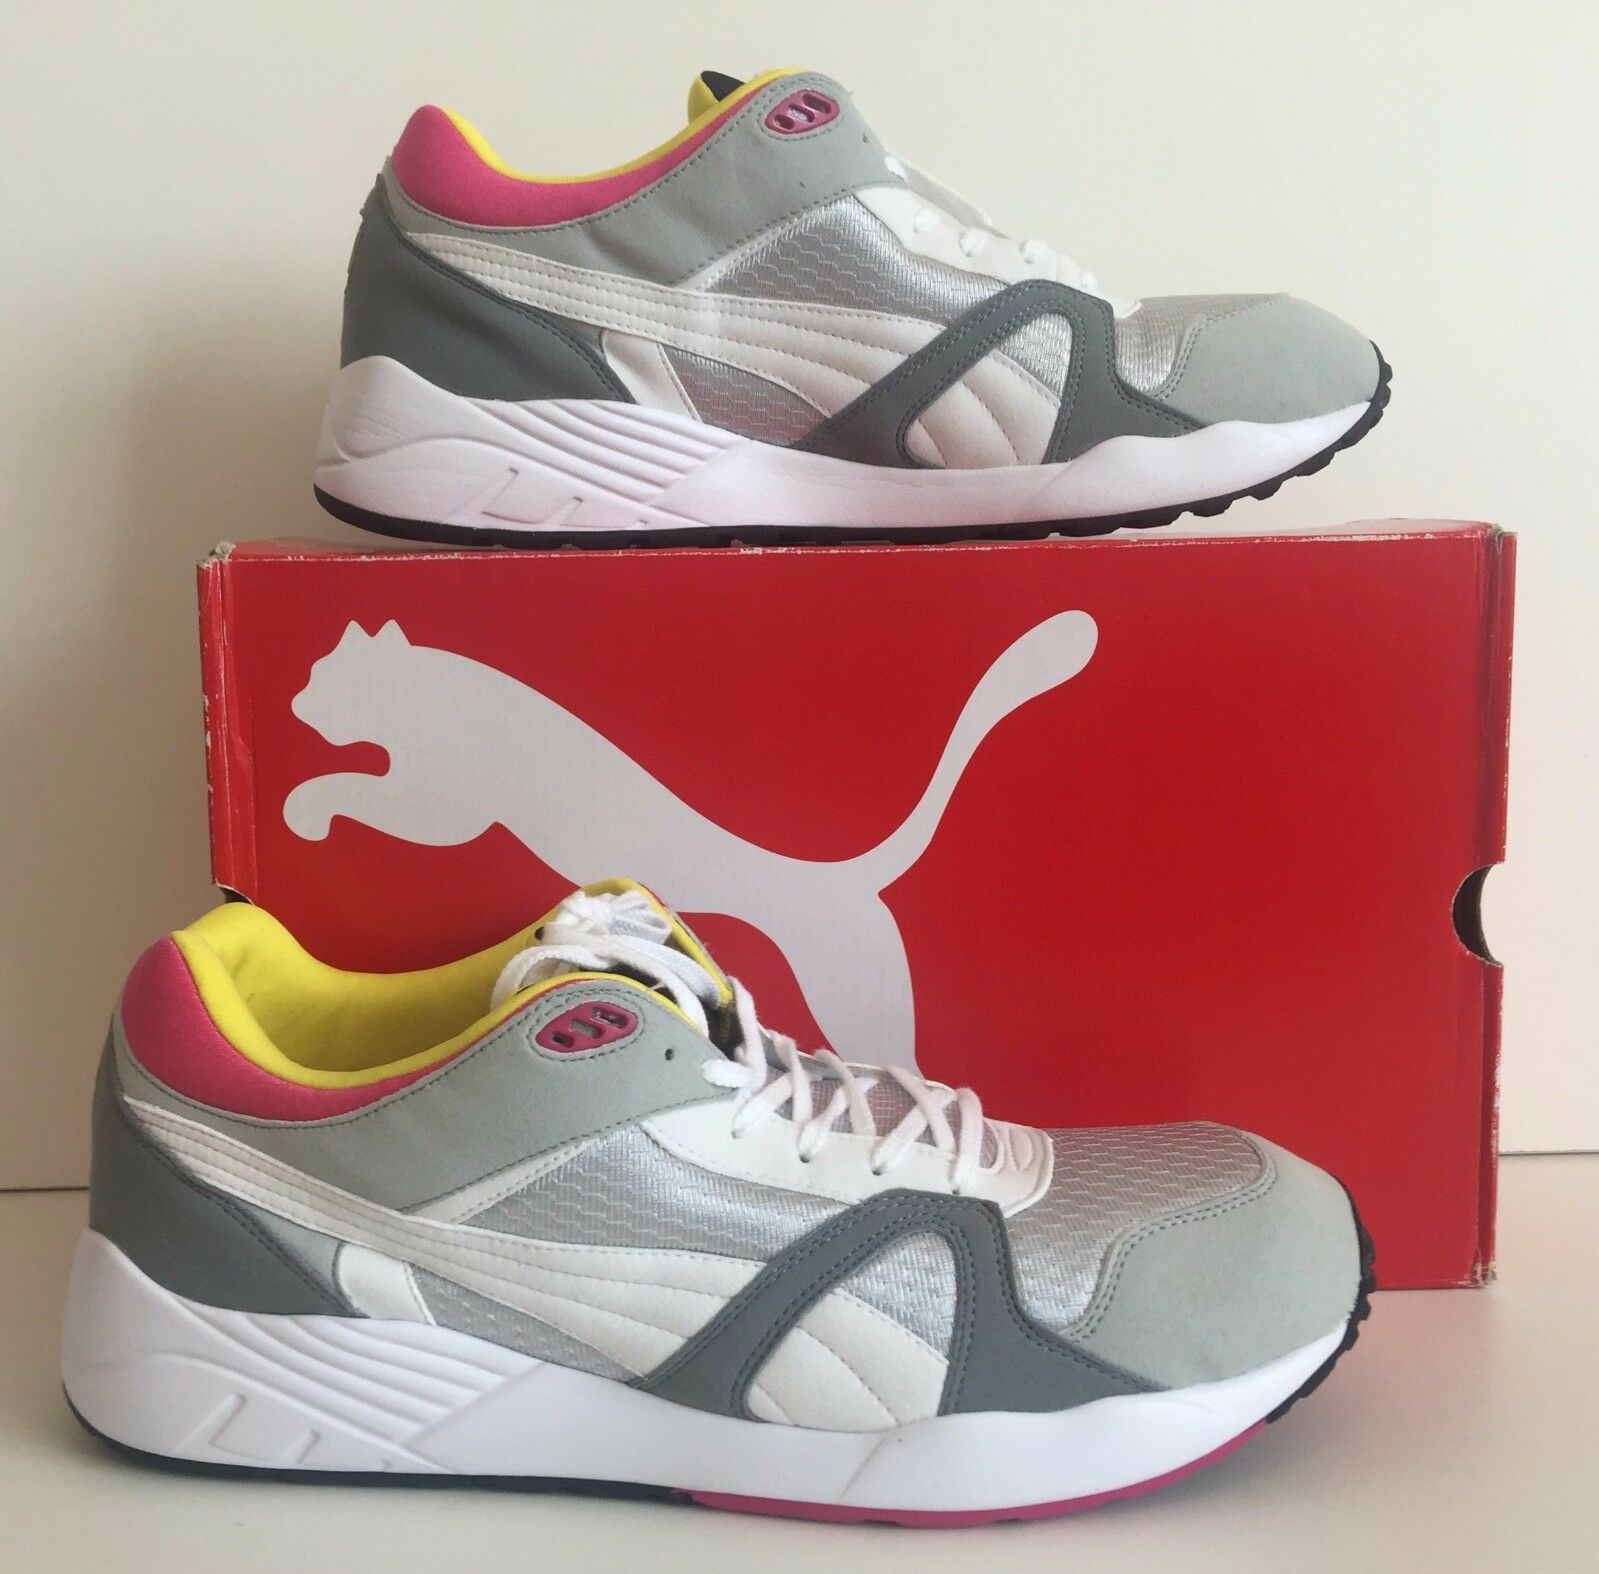 PUMA TRINOMIC COMPRESSION MULTI COLOUR TRAINERS Taille 13